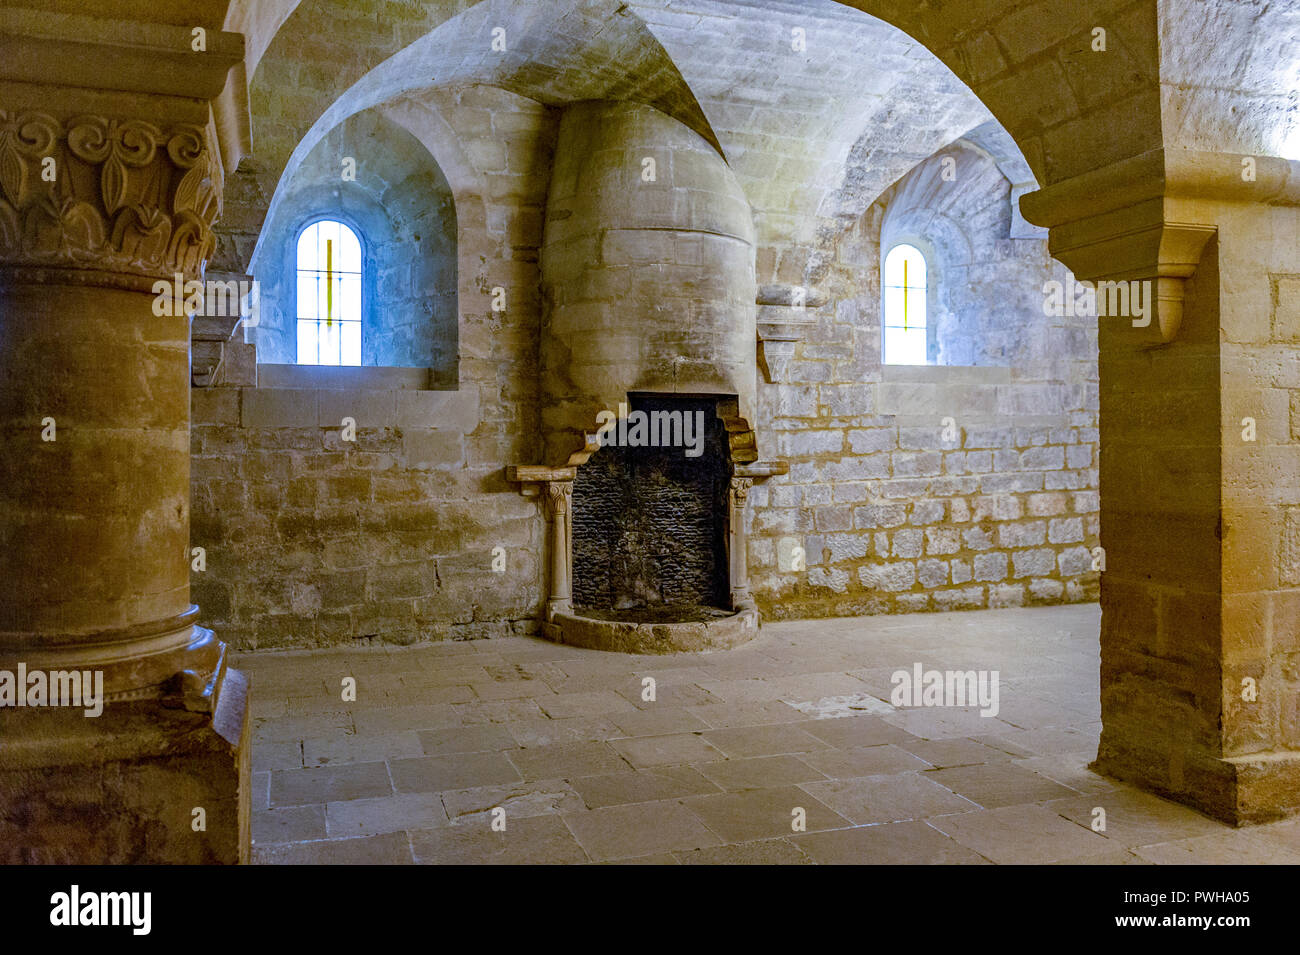 France. Vaucluse (84). Common Gordes, Regional Natural Park of Luberon, Abbey Notre Dame de Senanque dating from the twelfth century. The heater - Stock Image